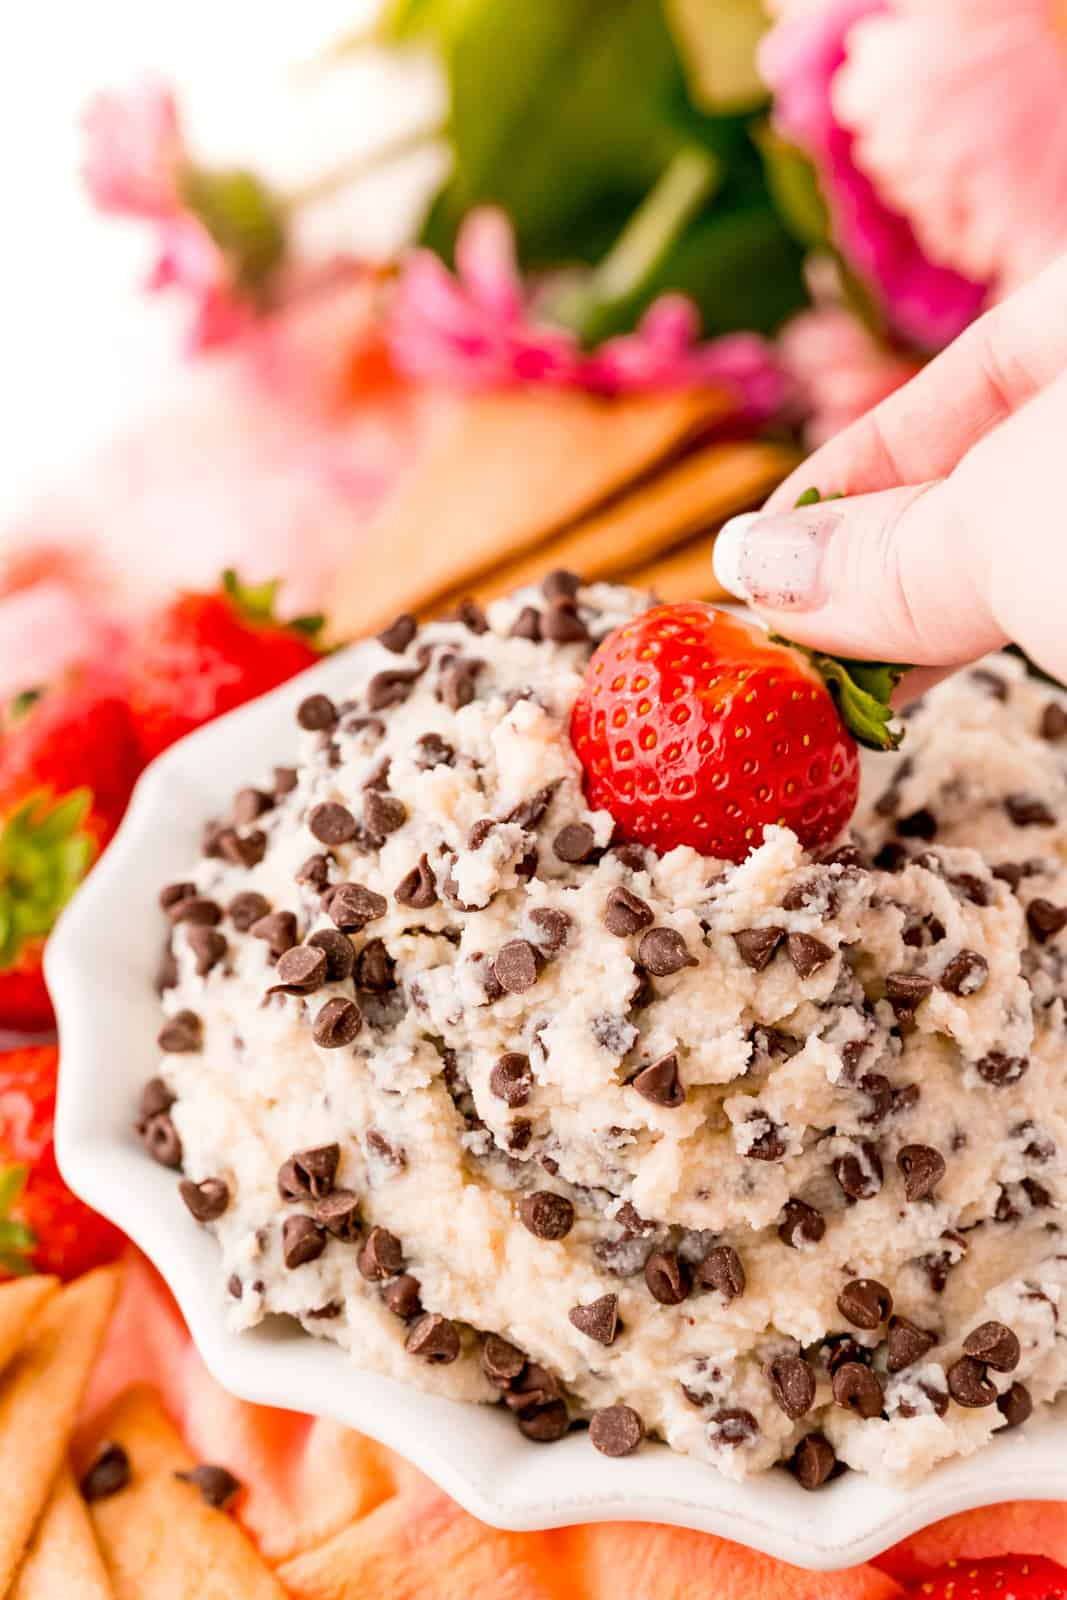 Hand dipping strawberry in Cannoli Dip